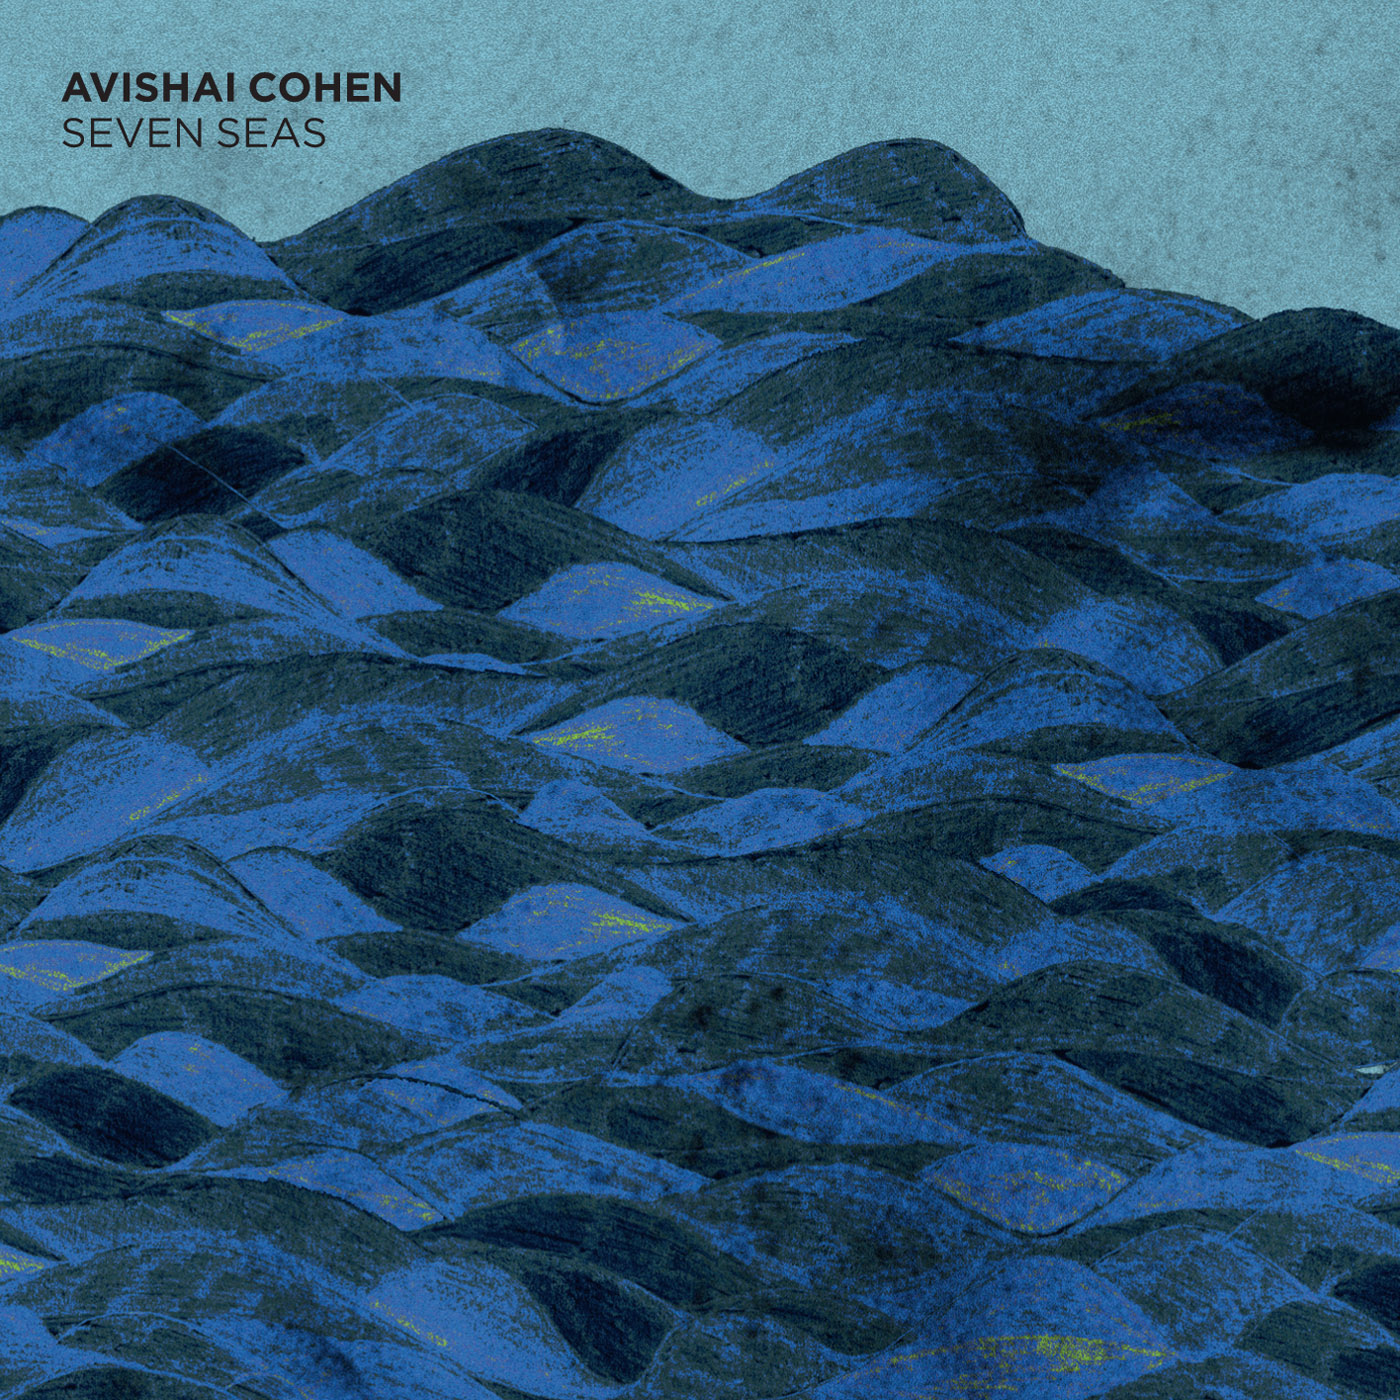 Seven Seas by Avishai Cohen cover